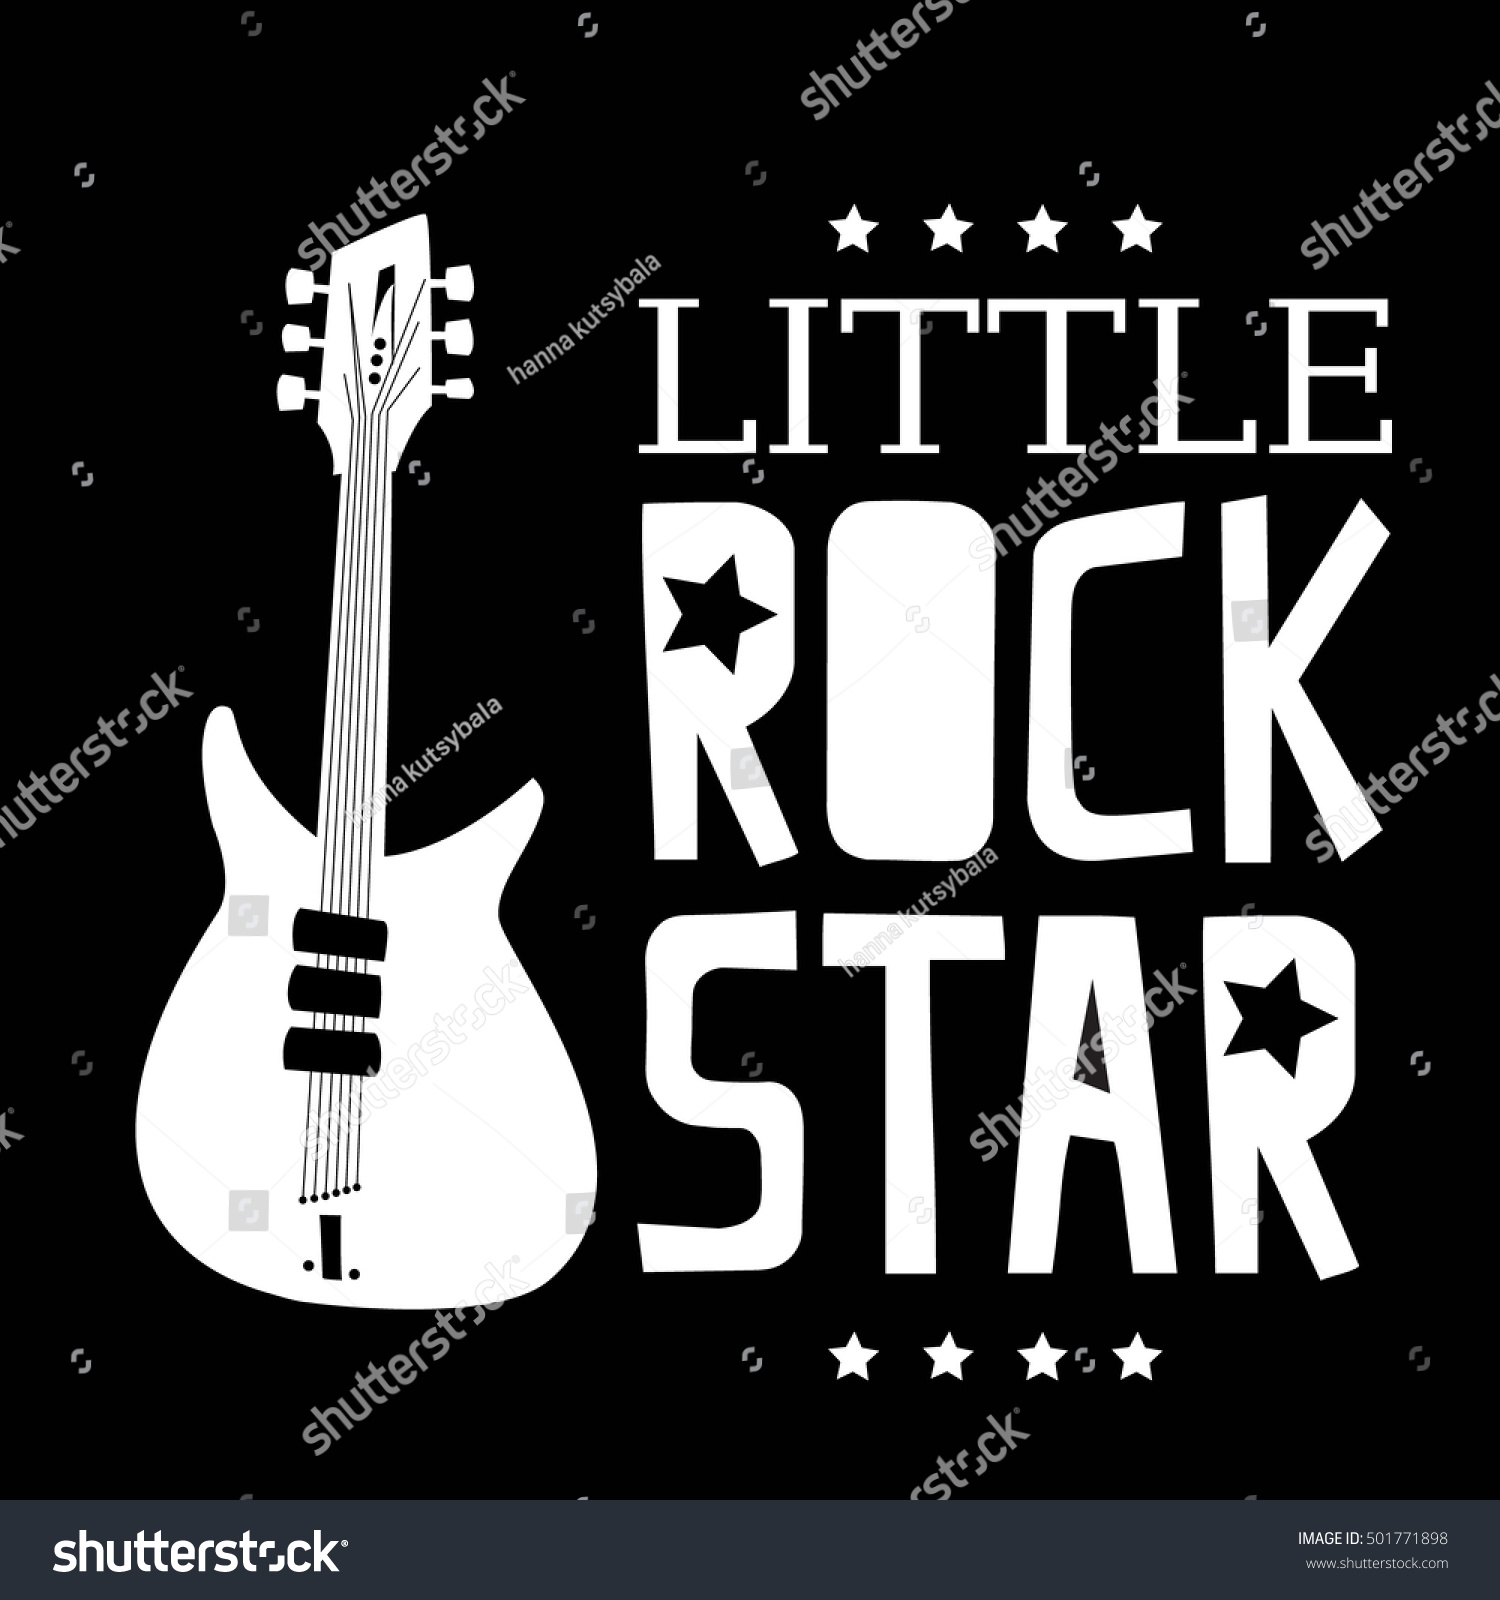 Little rock star typography graphic print stock vector for A design and color salon little rock